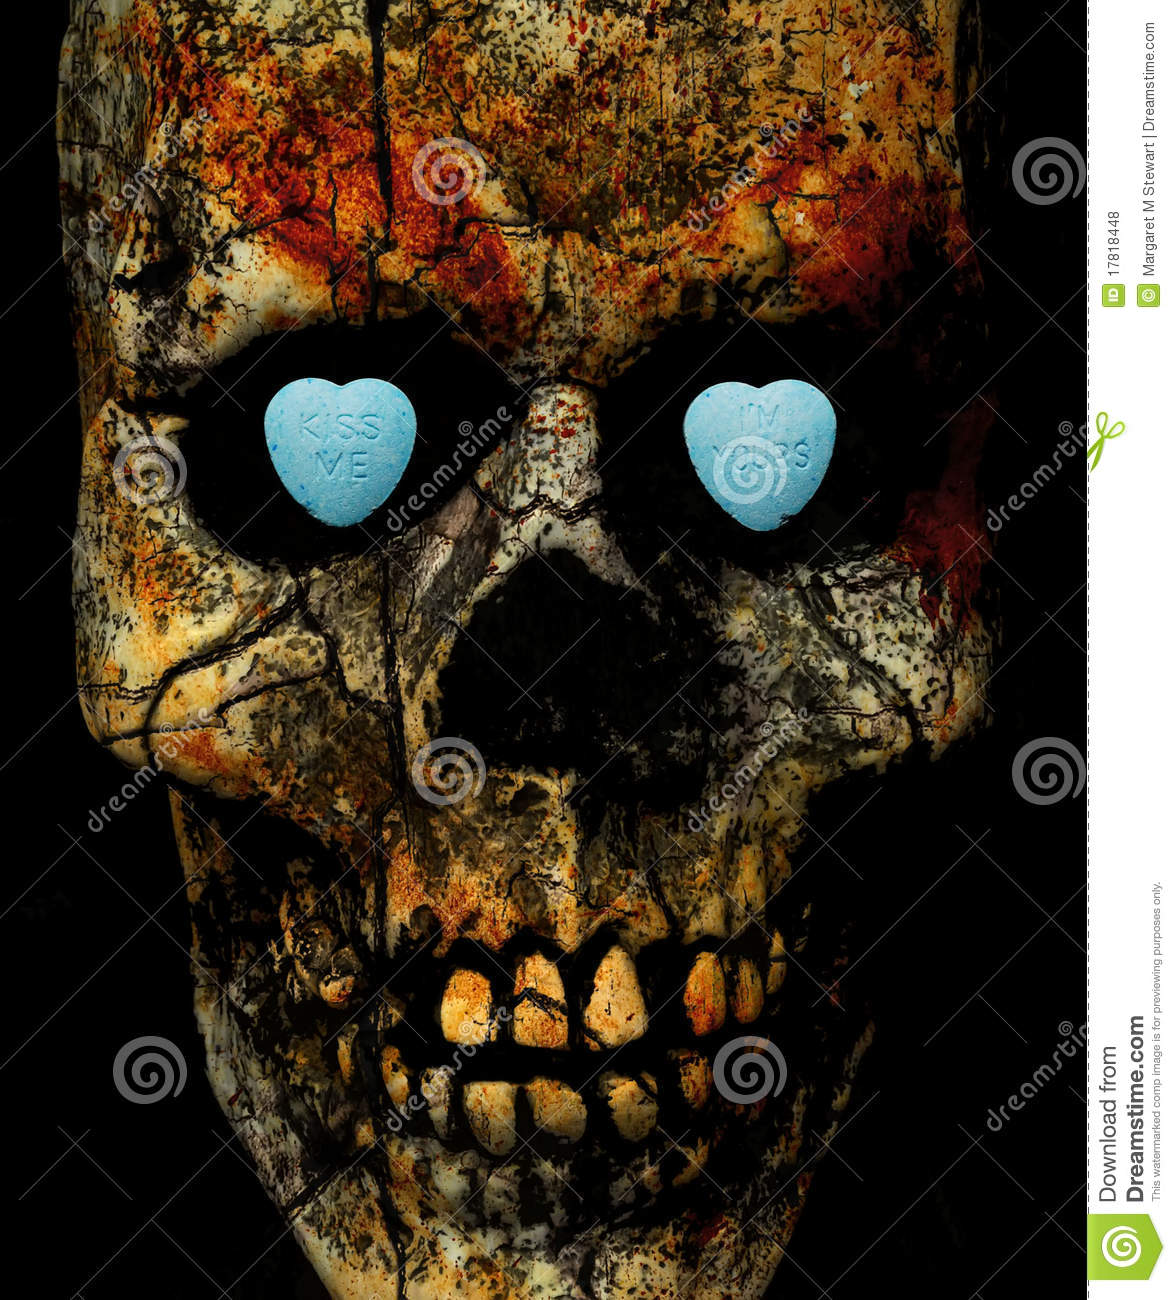 skull with conversation candy hearts